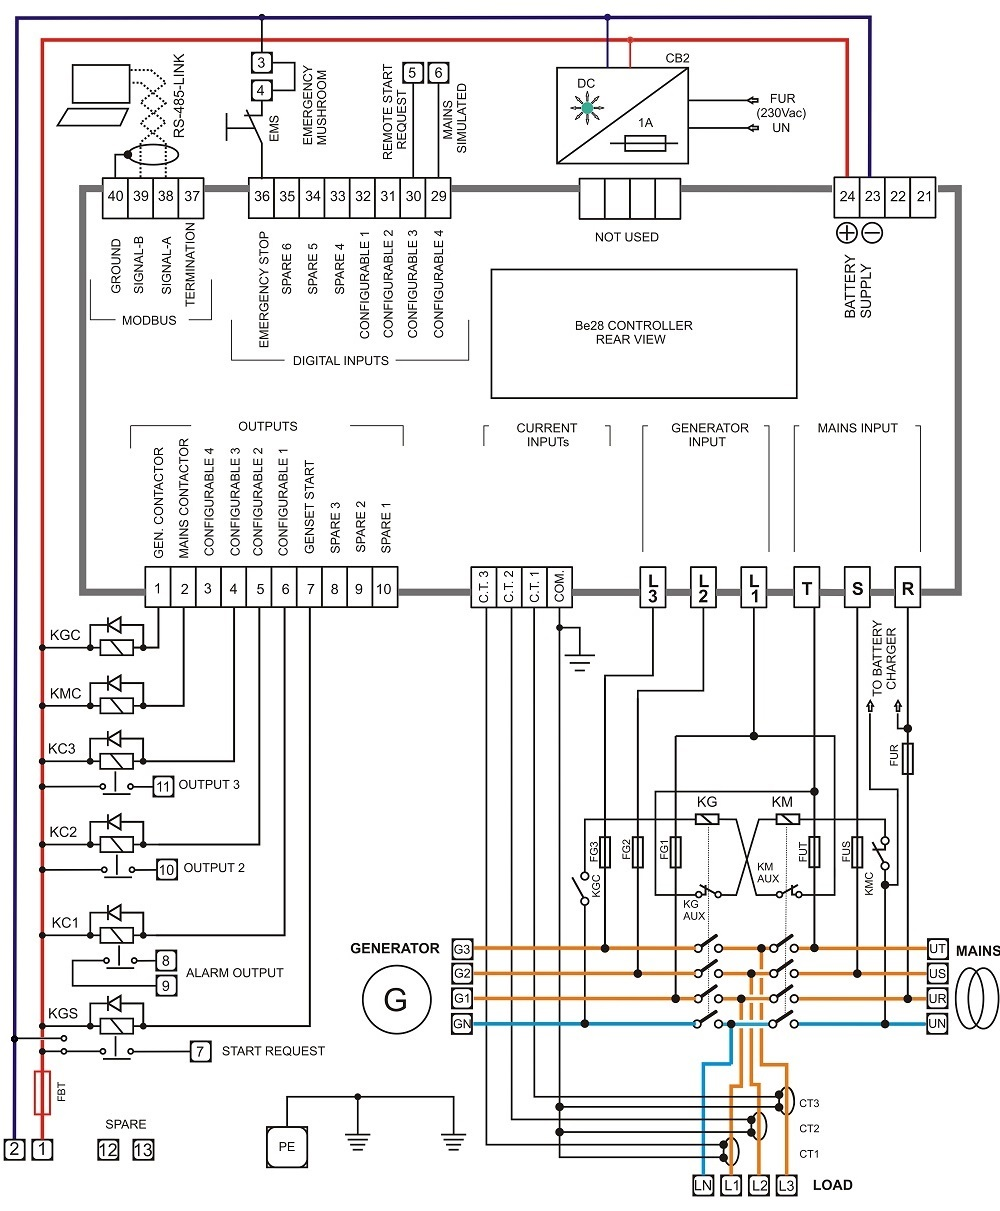 Control Wiring Diagram Of Ats Opinions About Wiring Diagram \u2022 Standby  Generator Transfer Switch Wiring Wiring Diagram For Ats